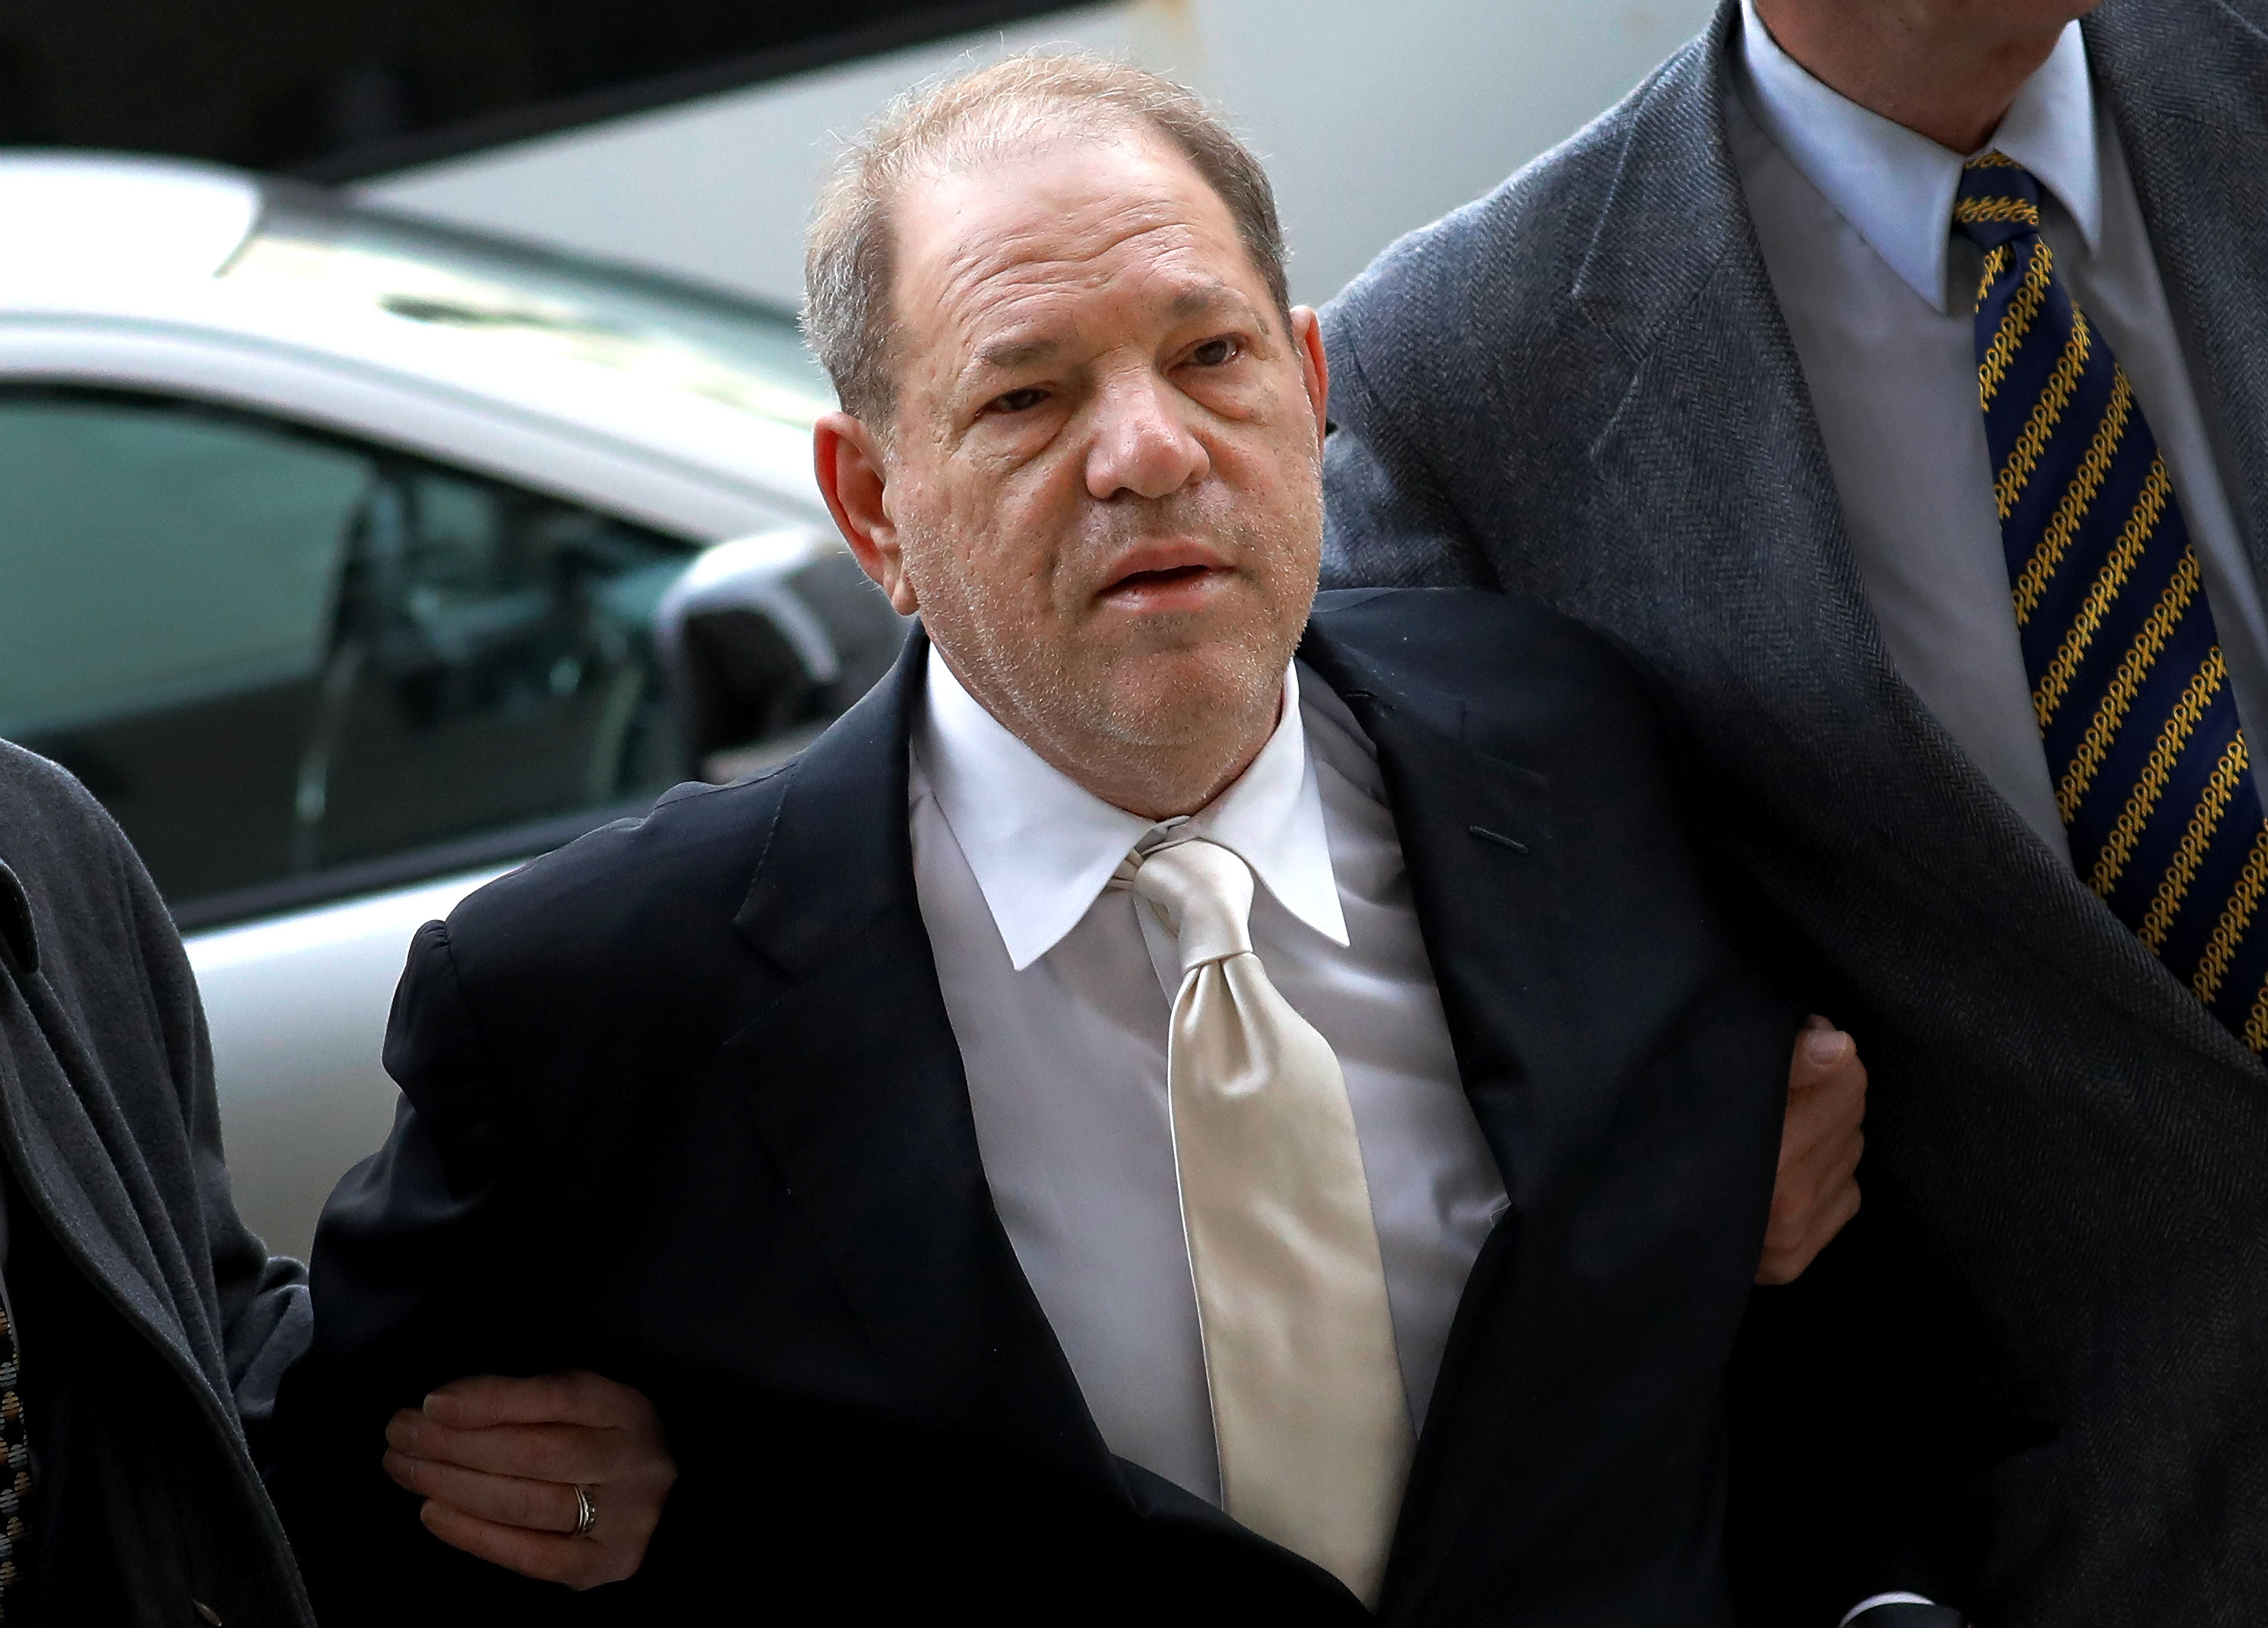 Time's Up says Weinstein verdict 'marks a new era of justice'